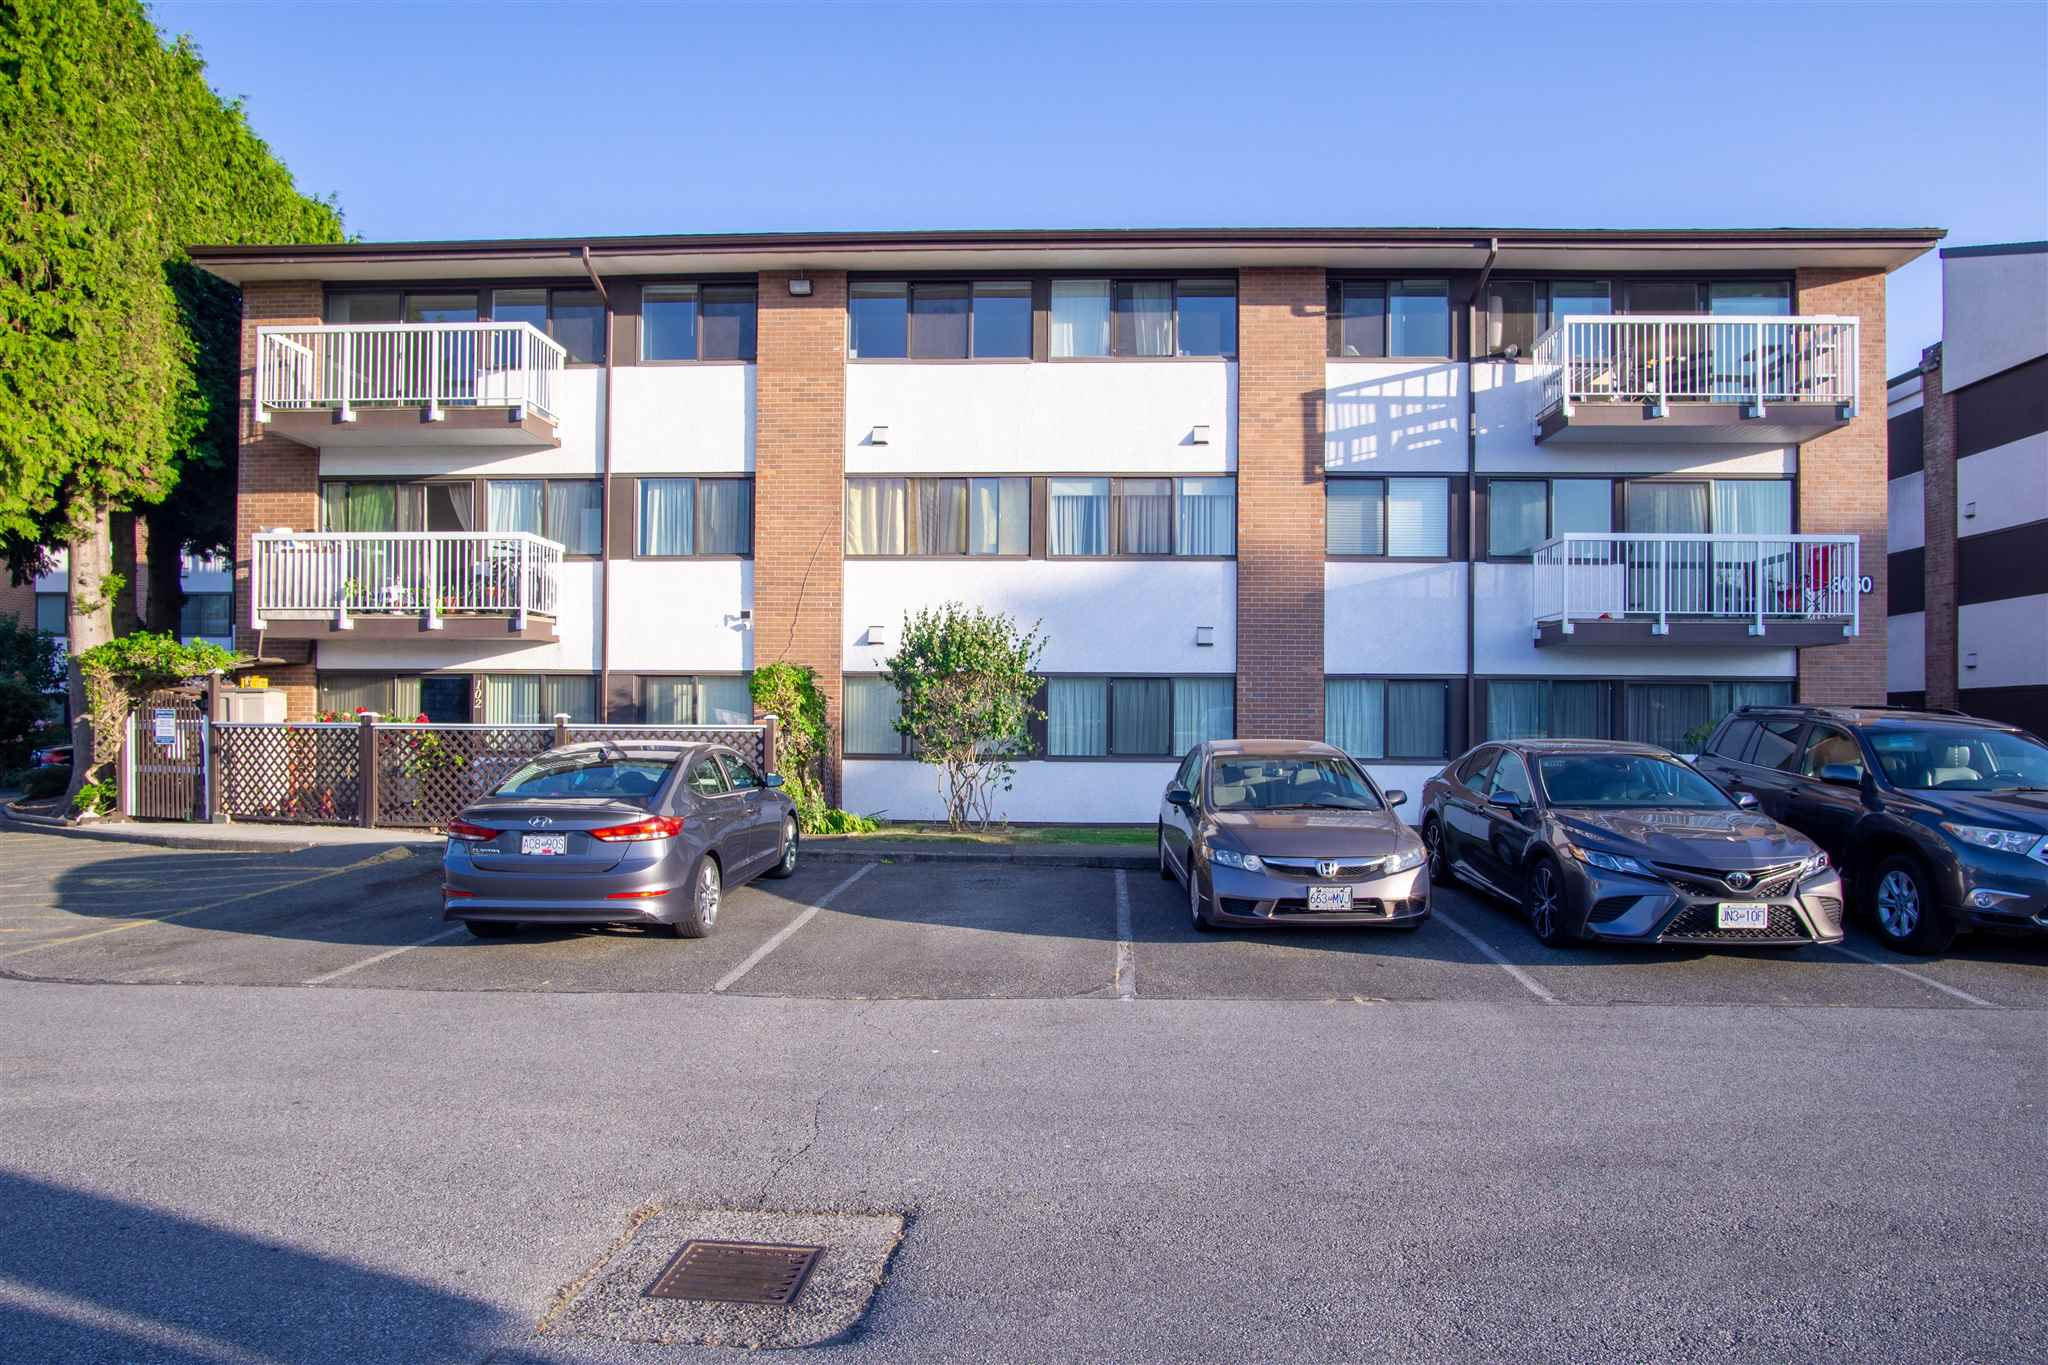 206 8060 RYAN ROAD - South Arm Apartment/Condo for sale, 3 Bedrooms (R2602539)